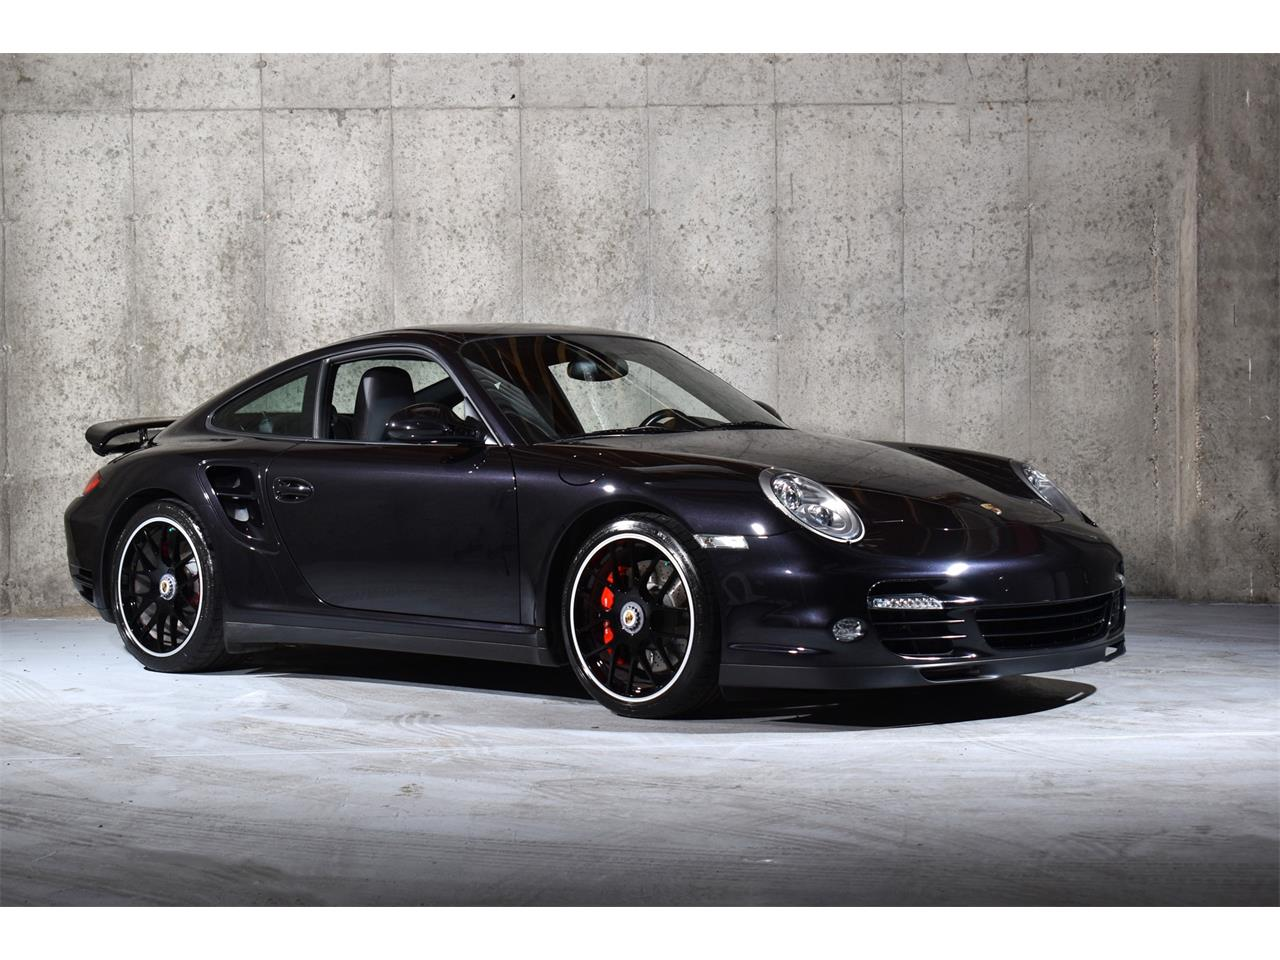 2011 Porsche 911 for sale in Valley Stream, NY – photo 2